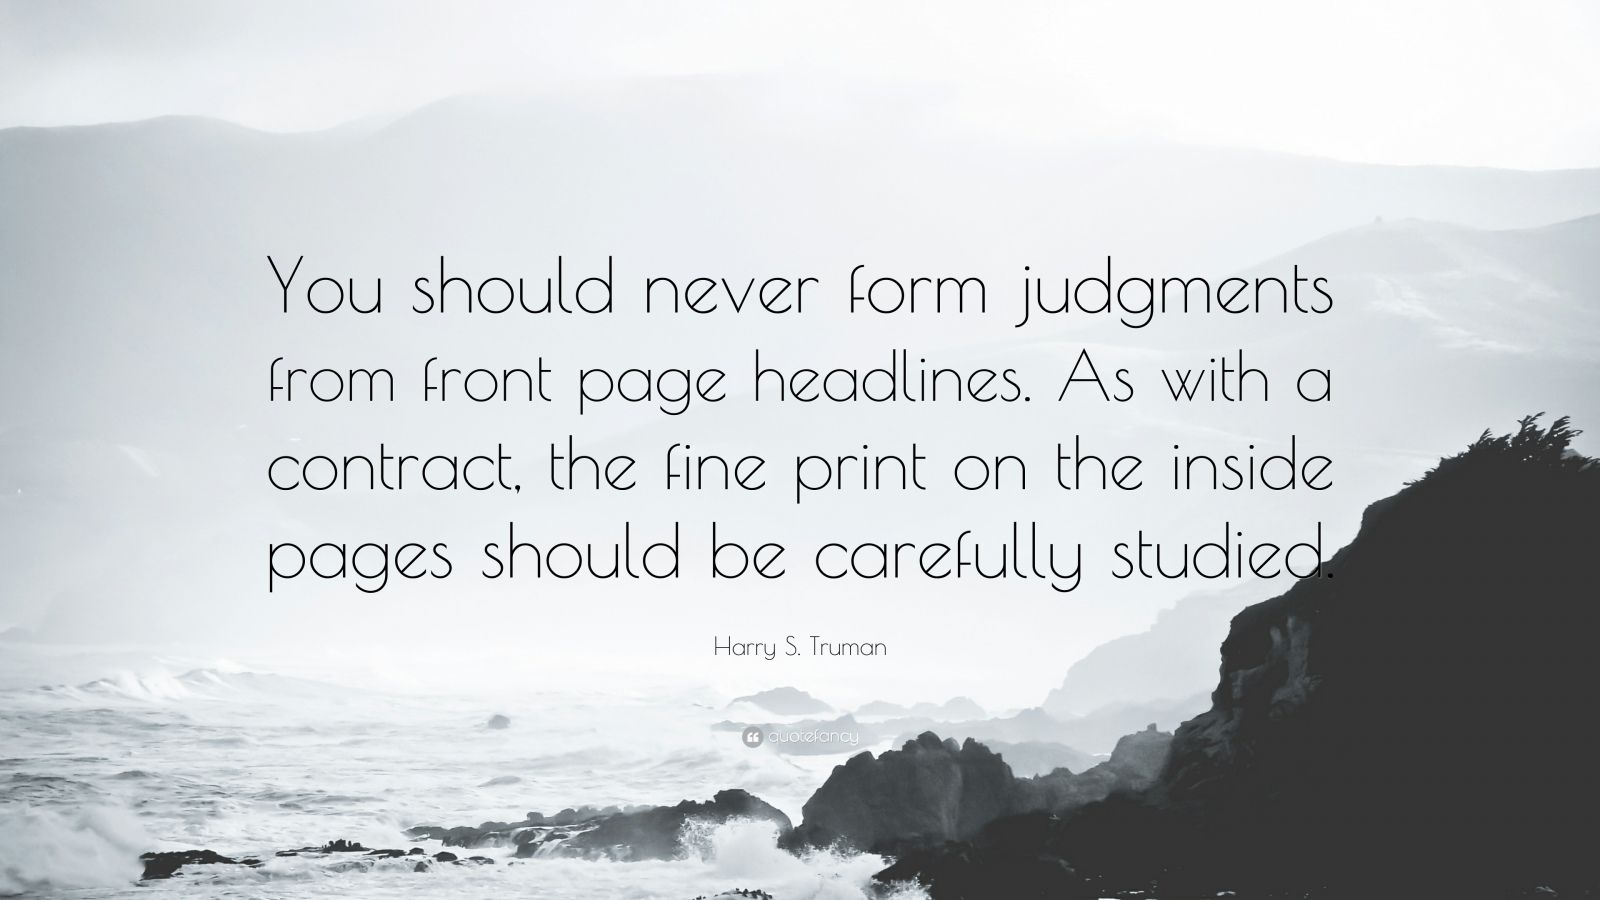 harry s truman quote you should never form judgments from front page headlines